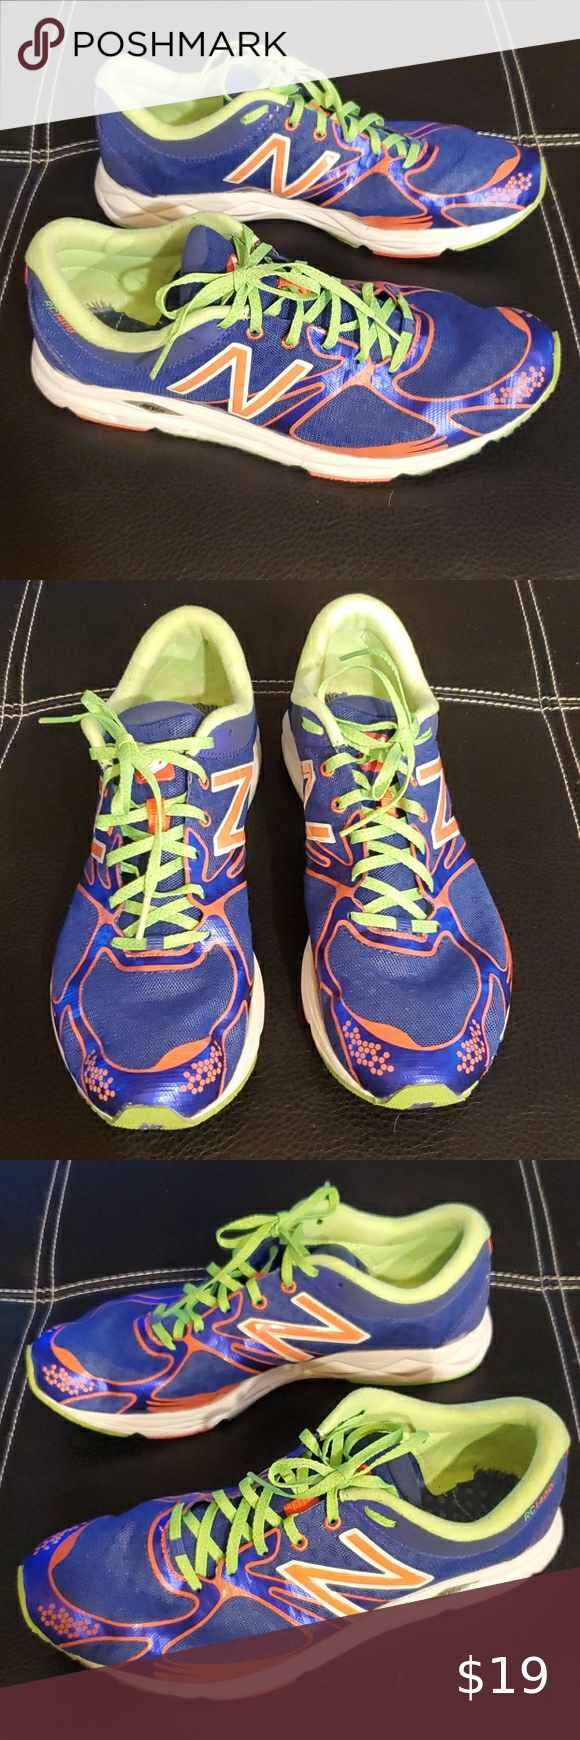 New Balance Rev lite RC 1400 sneakers Very vibrant light weight ...